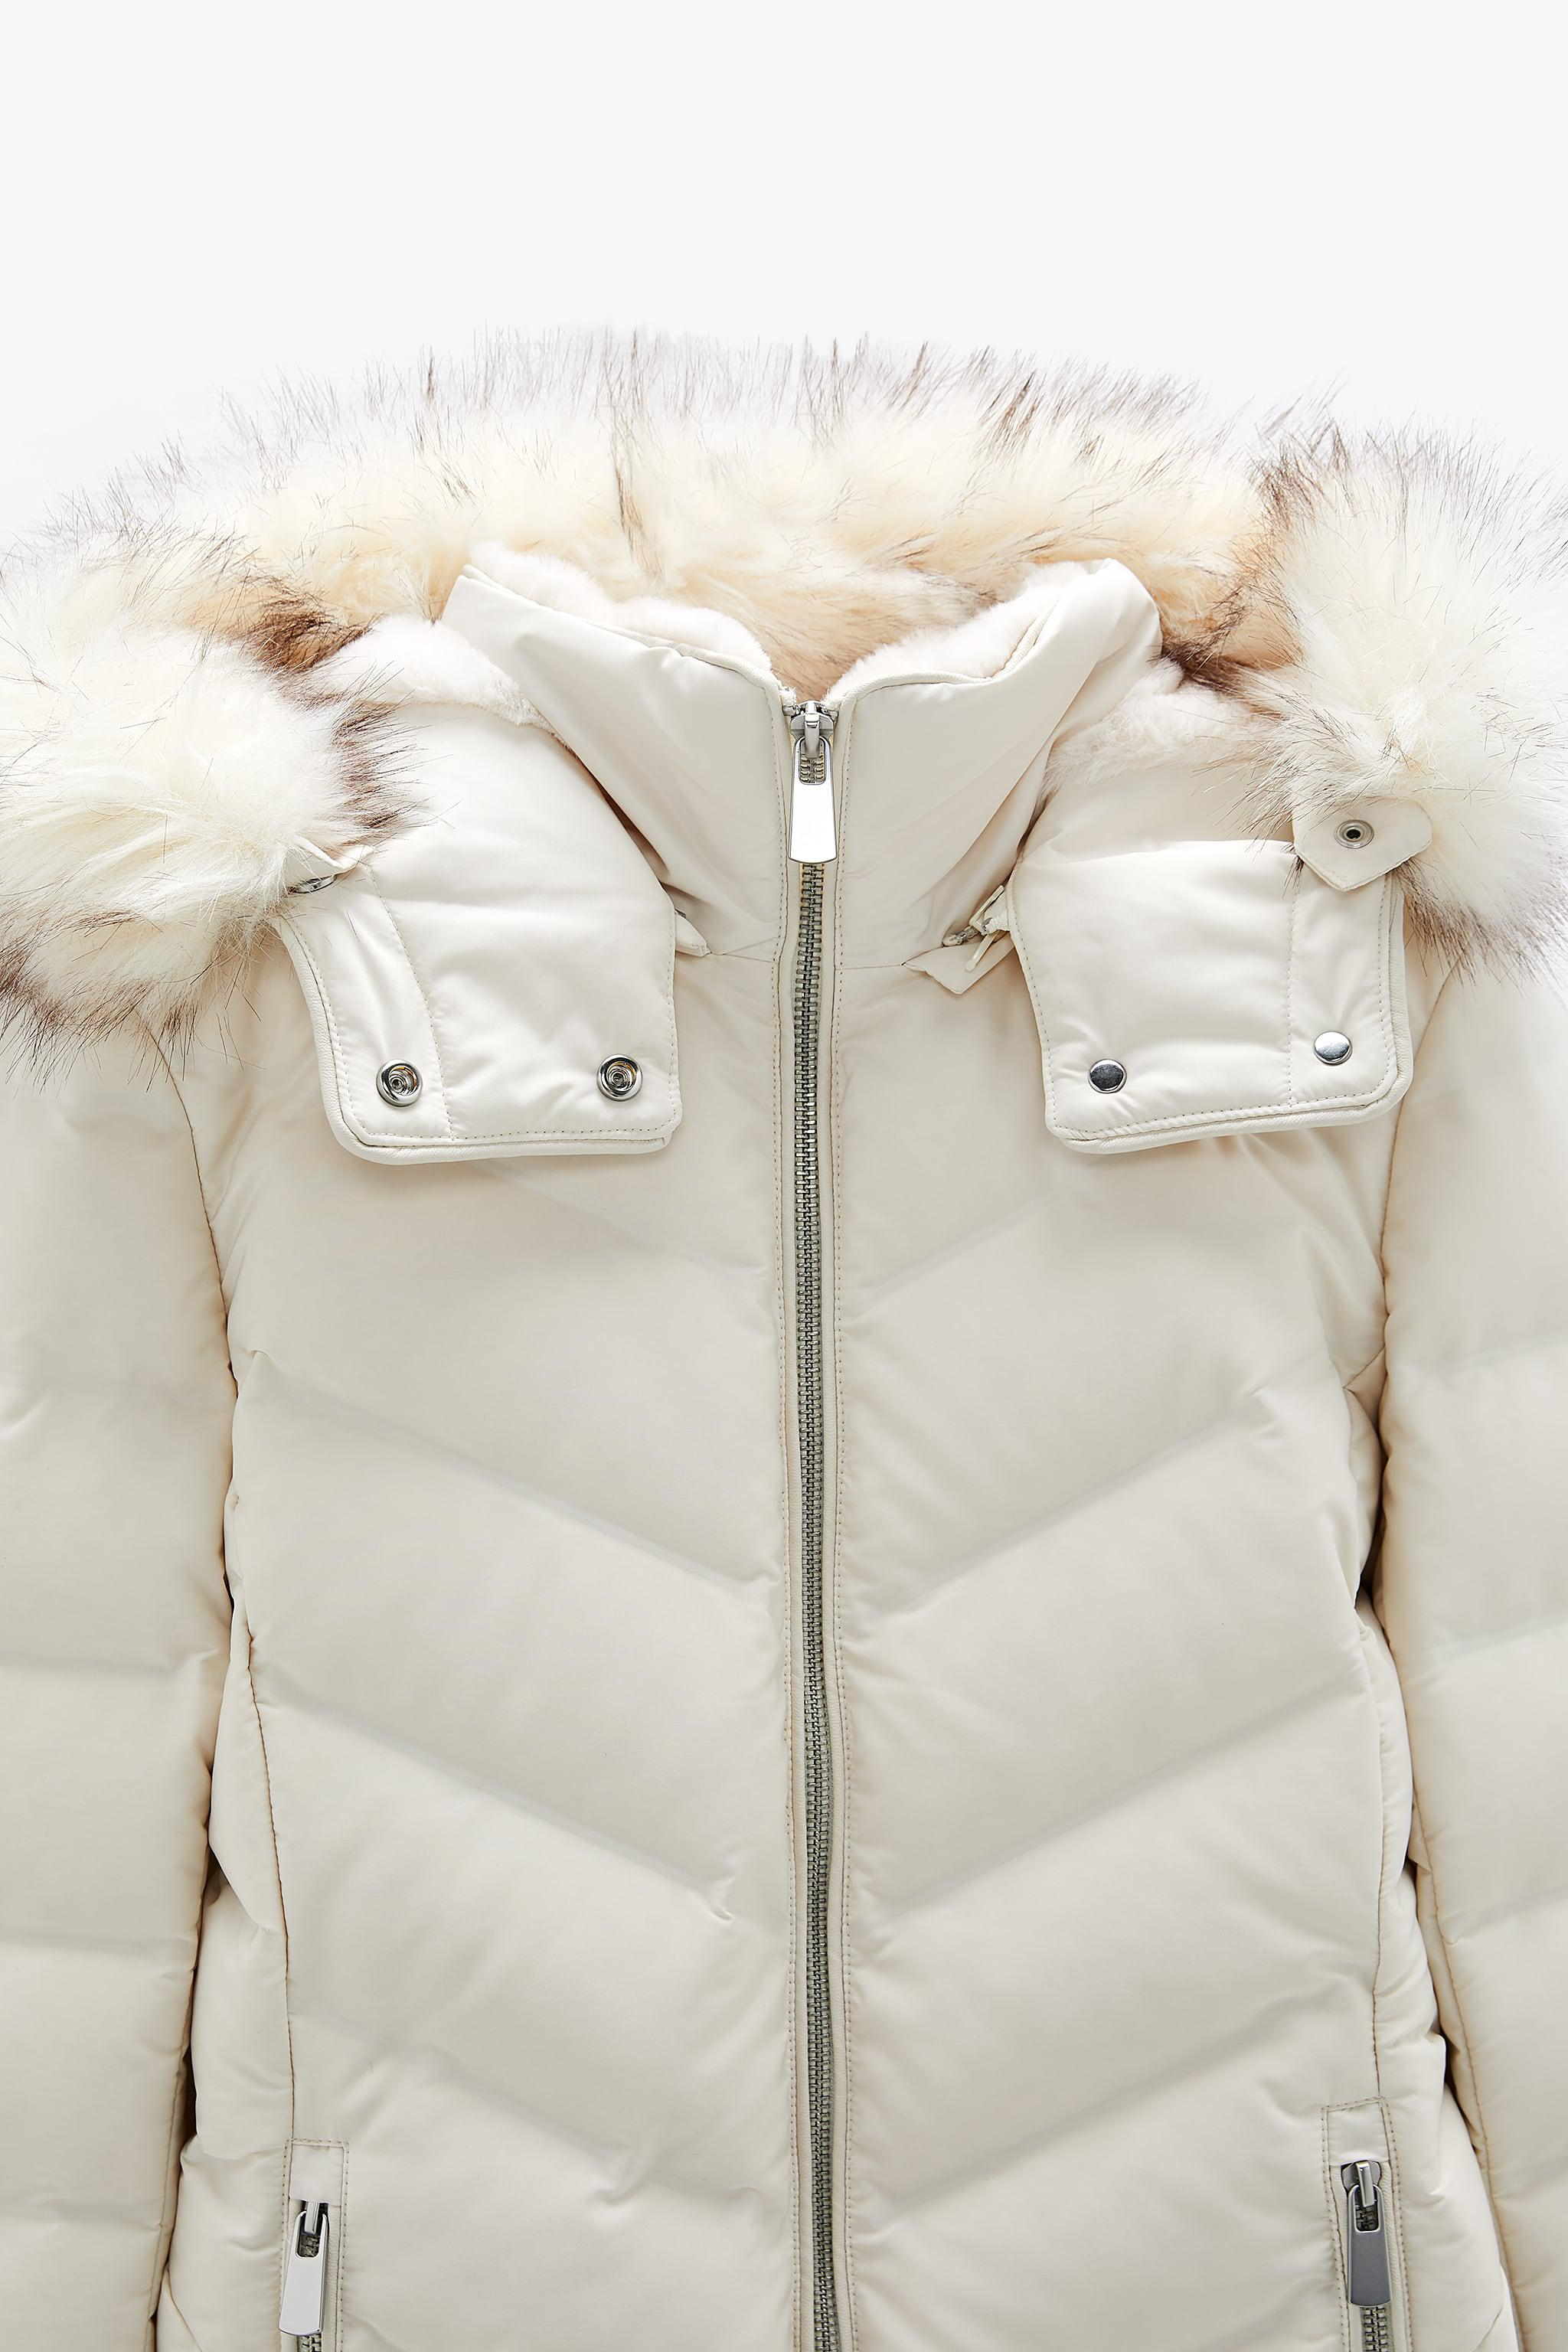 WATER AND WIND PROTECTION JACKET 6